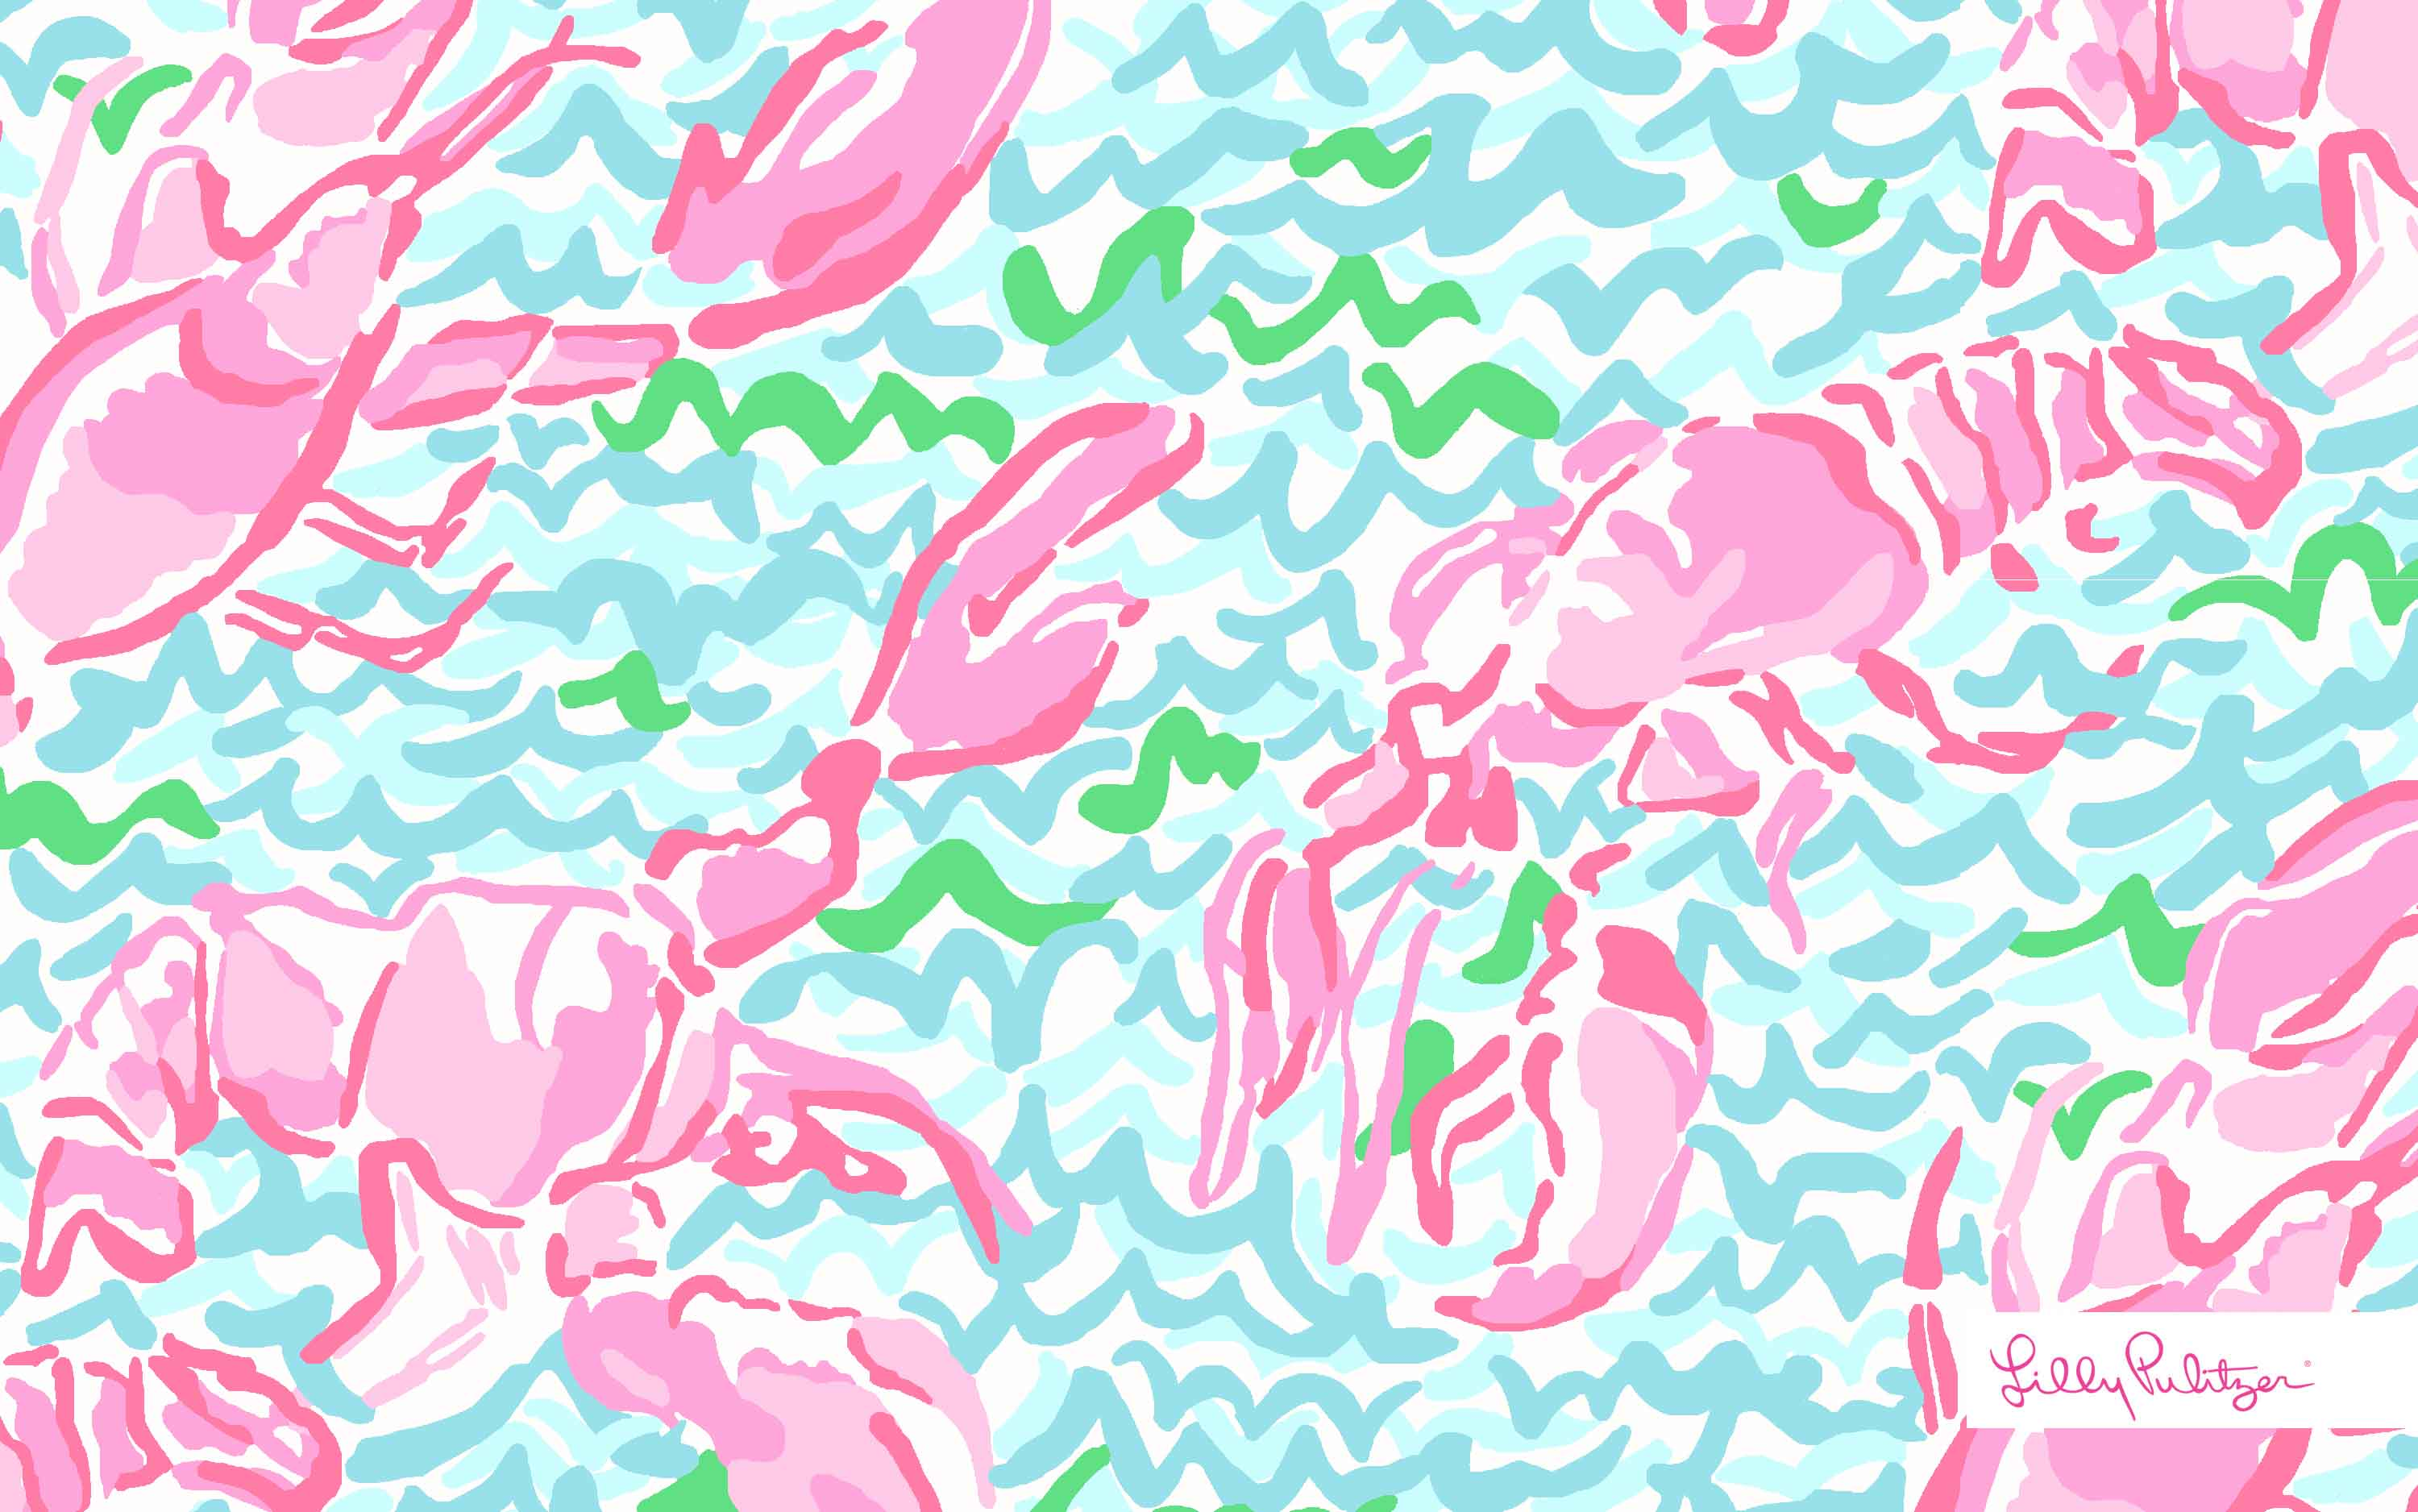 Lilly Pulitzer Wallpaper Backgrounds - WallpaperSafari